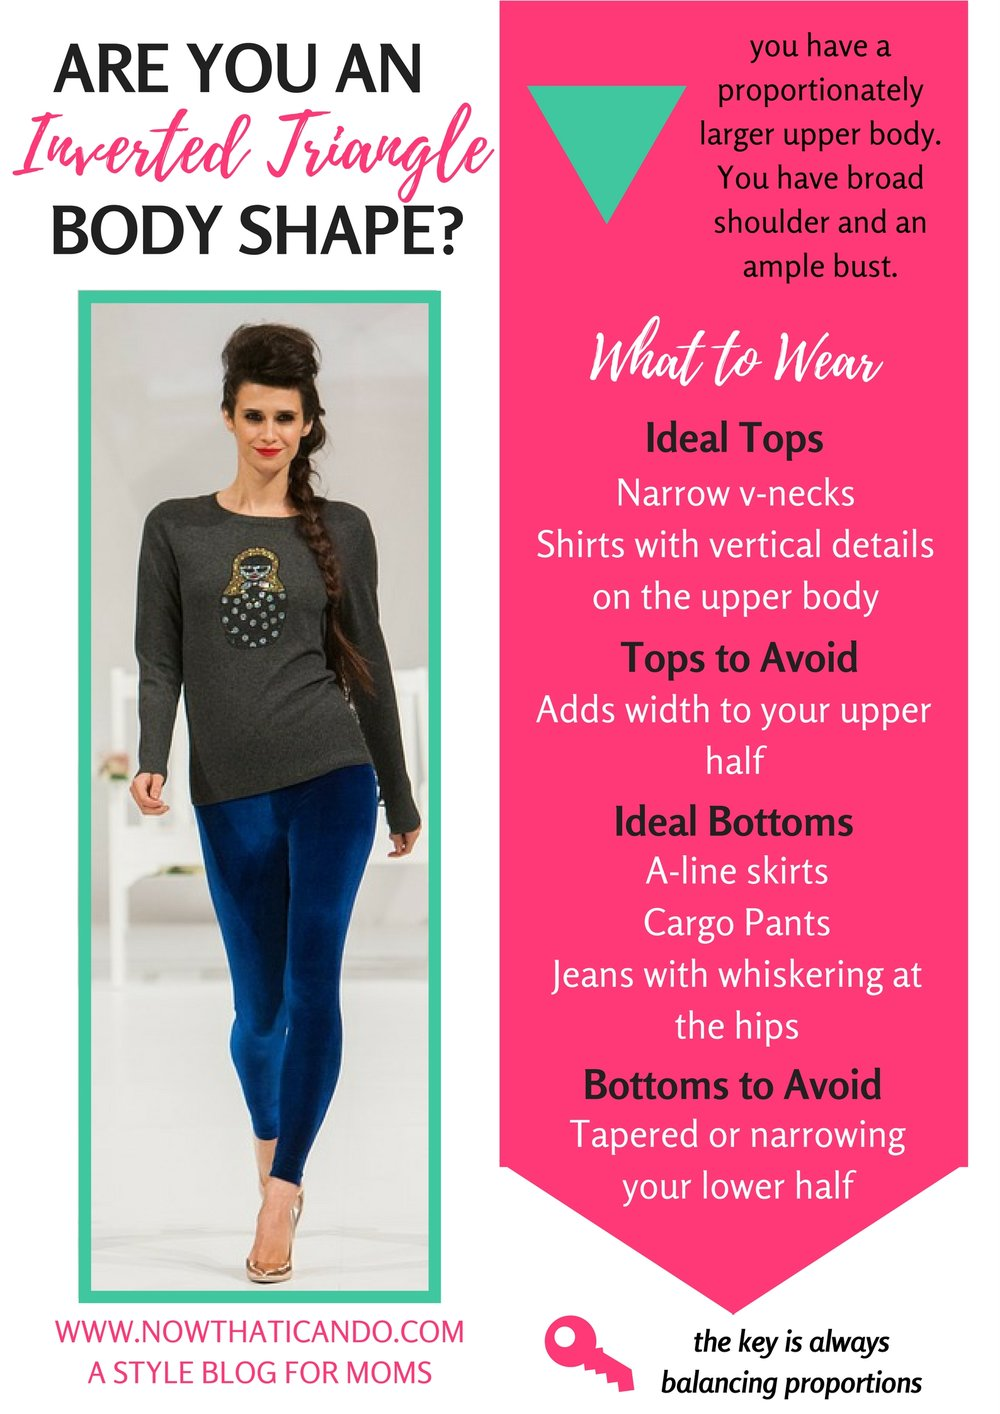 are you the inverted triangle body shape? (Pin this to save for future reference!)